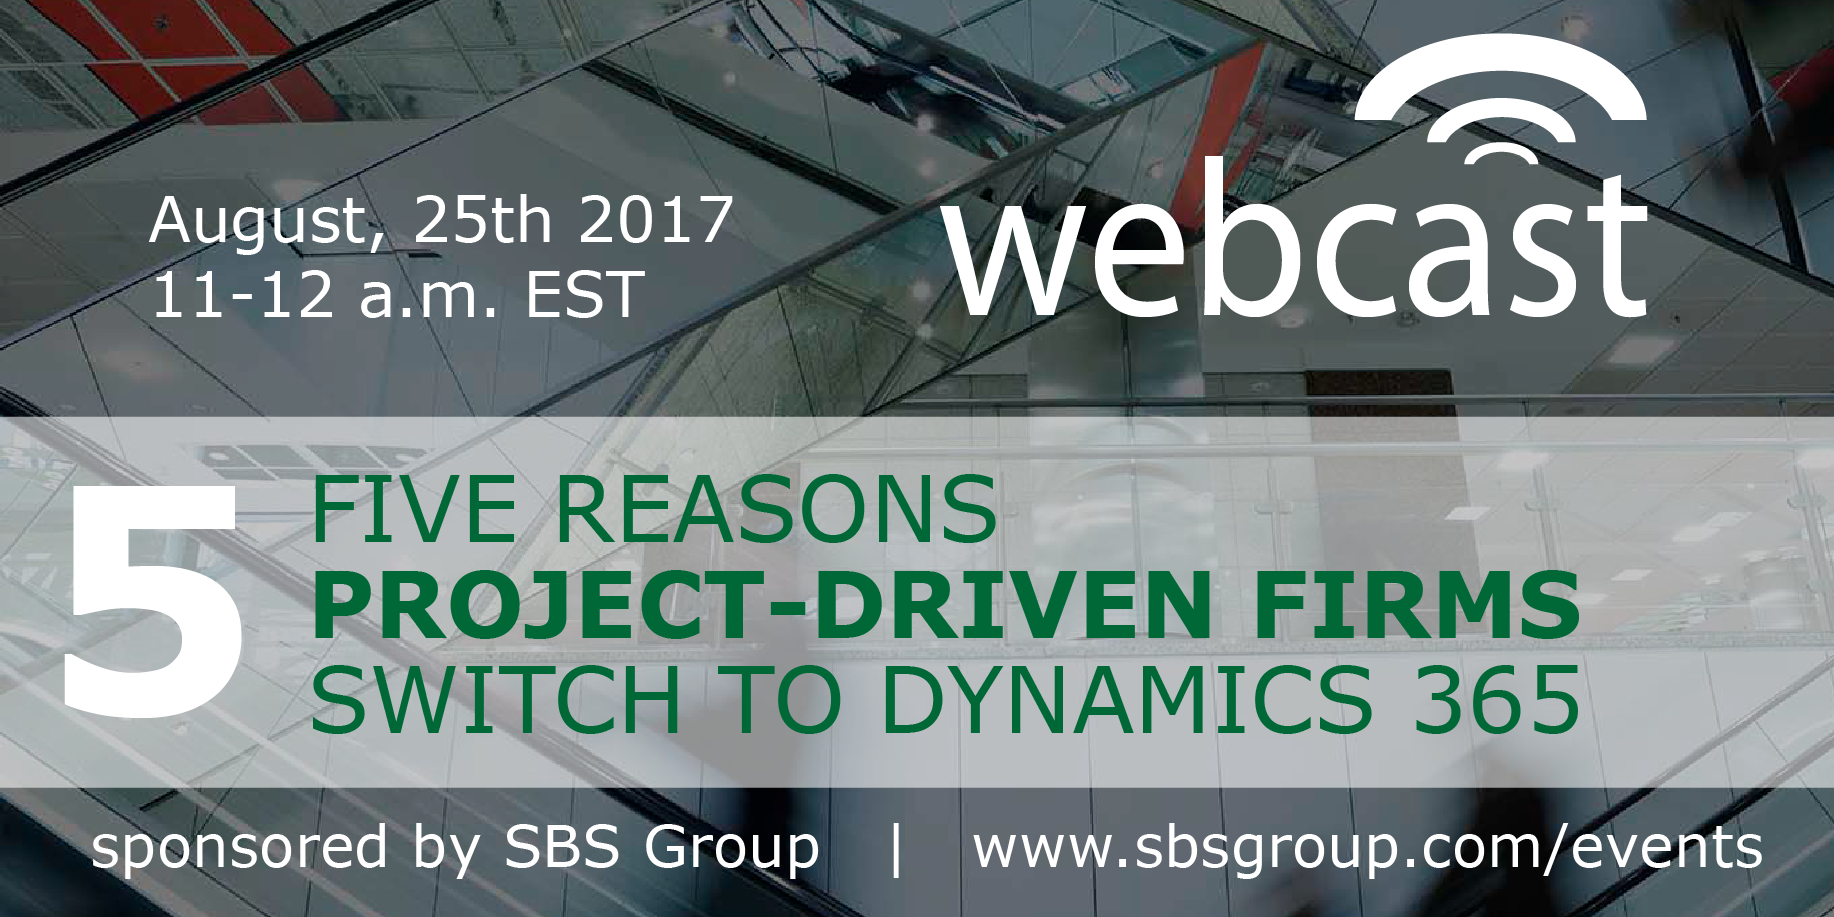 5-Reasons-Project-Driven-Companies-Switch-Dynamics365-02-02